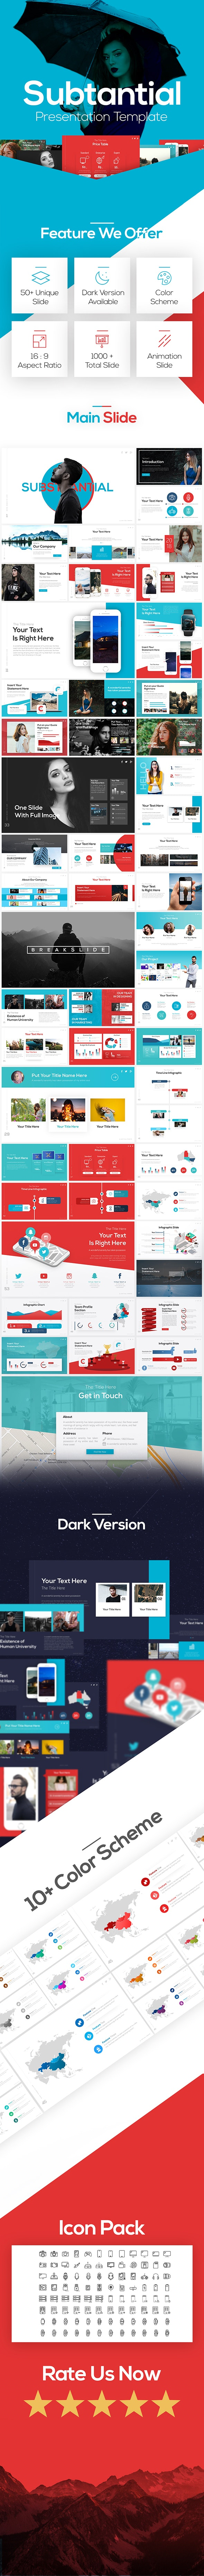 Substantial - Creative Powerpoint Template - Business PowerPoint Templates